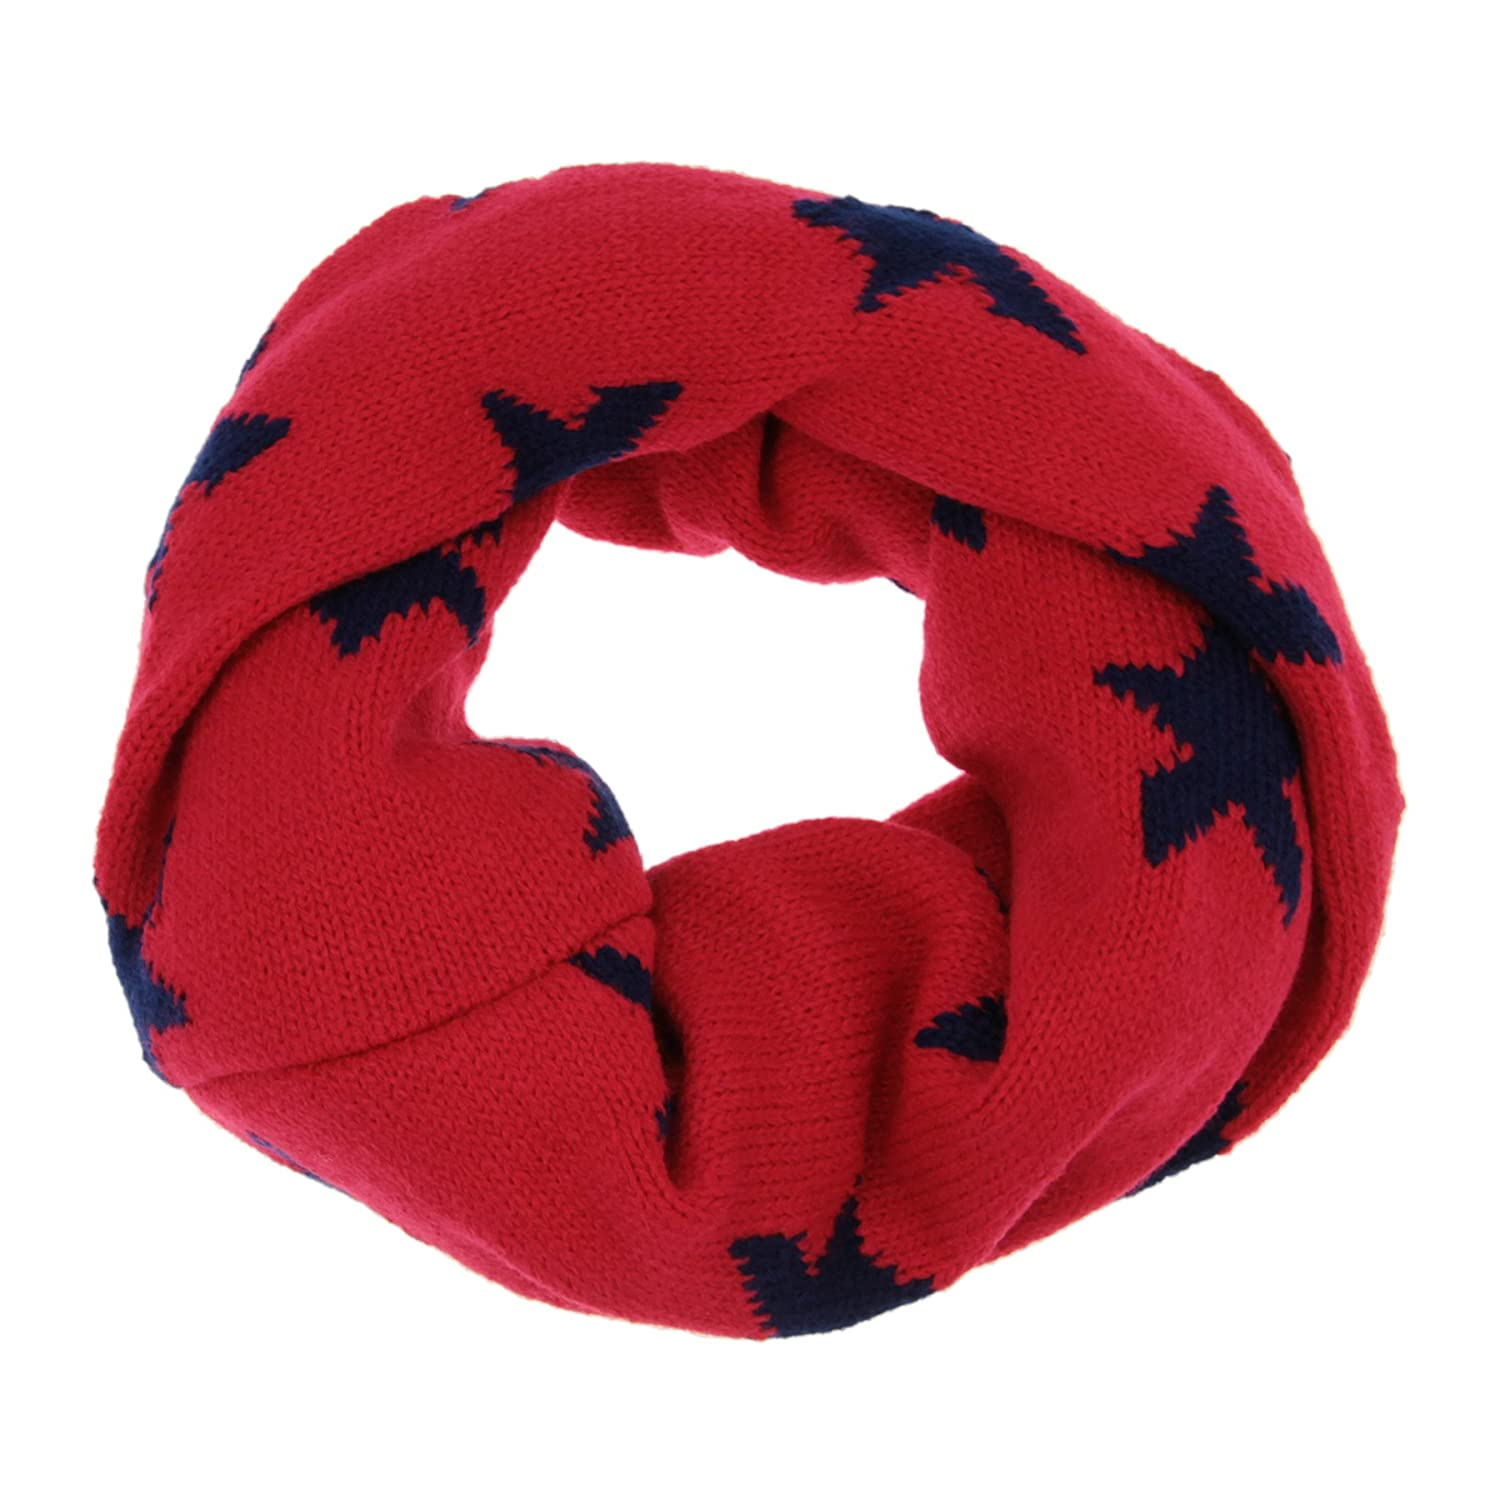 Liying 1-8 Years Old Kids Lovely Chunky Warm Neckerchief Crochet Knitted Circle Loop Scarf Cowl Shawl Snood Christmas Gift